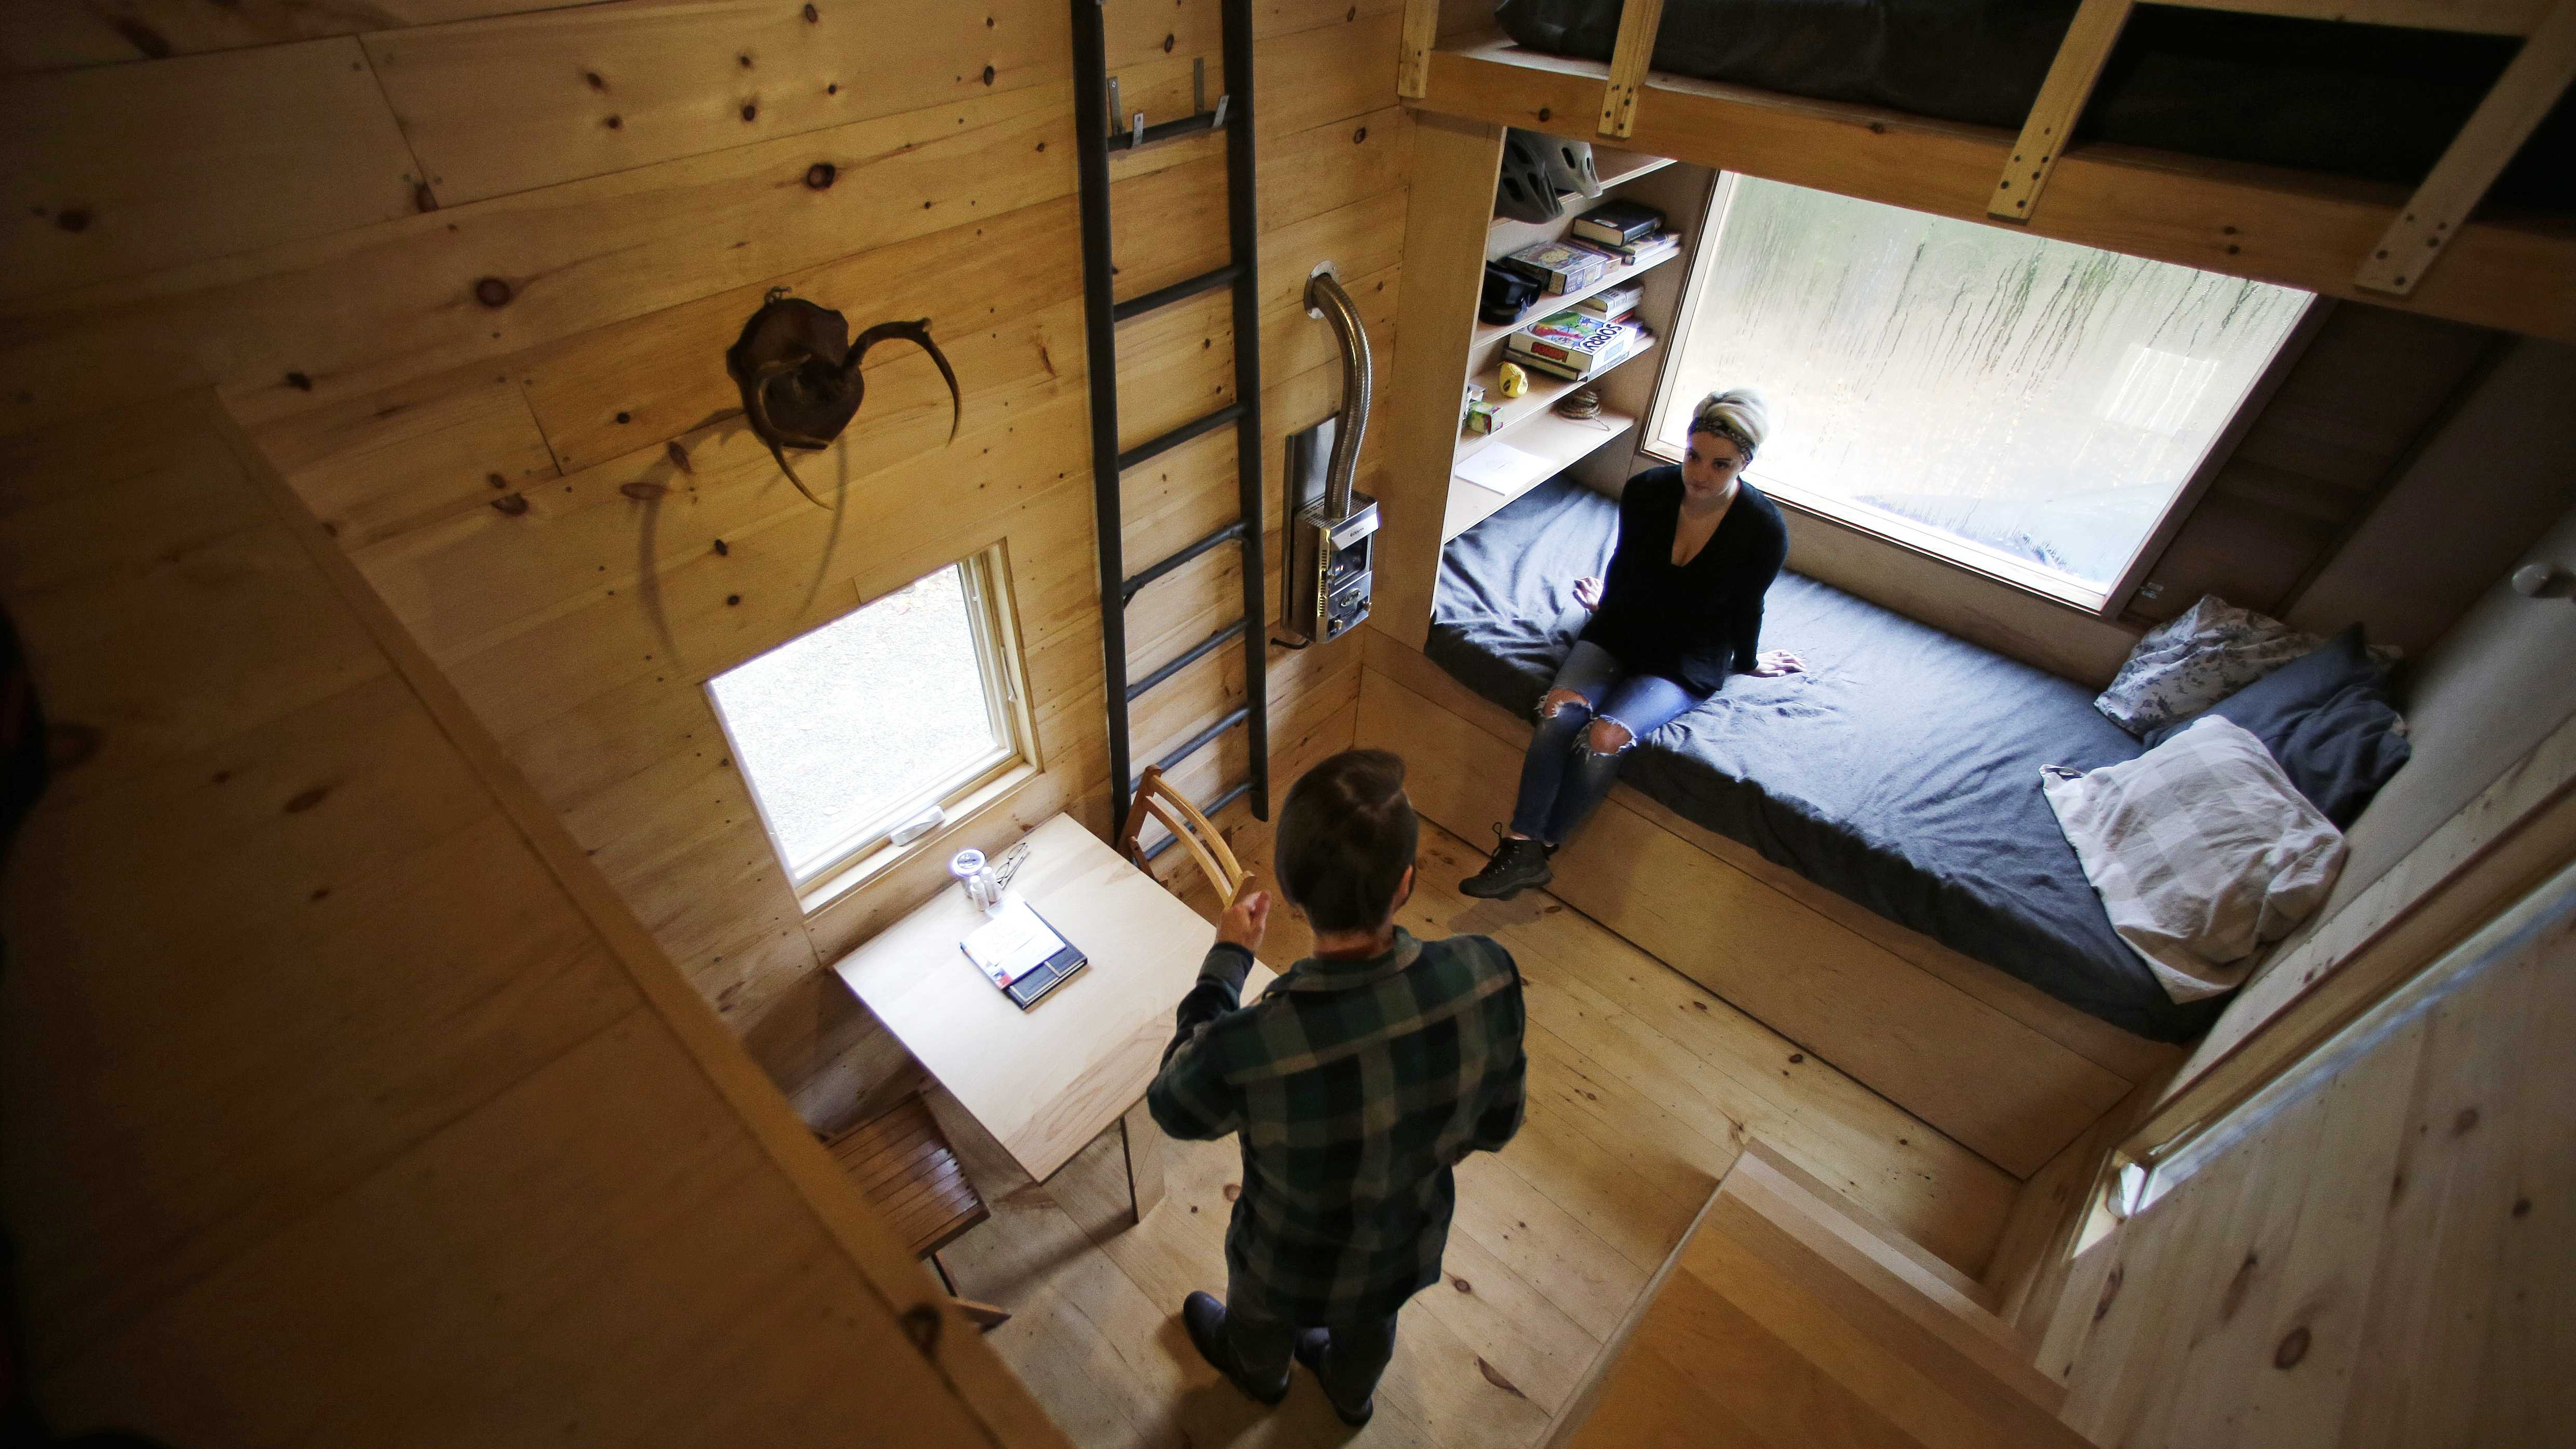 "In this Tuesday, Oct. 20, 2015 photo, Shane Lentz, of Pittsburgh, Pa., and his wife Hilary, talk before leaving a tiny house, which they rented for a weekend, in Croydon, N.H. As the tiny house phenomenon sweeps the nation, Harvard's Millennial Housing Lab thinks a tryout is in order for people toying with radically downsizing their lives. Its new ""Getaway"" project gives the curious an opportunity to spend a night or two in one of three tiny houses and get a real feel for the lifestyle before taking the plunge."